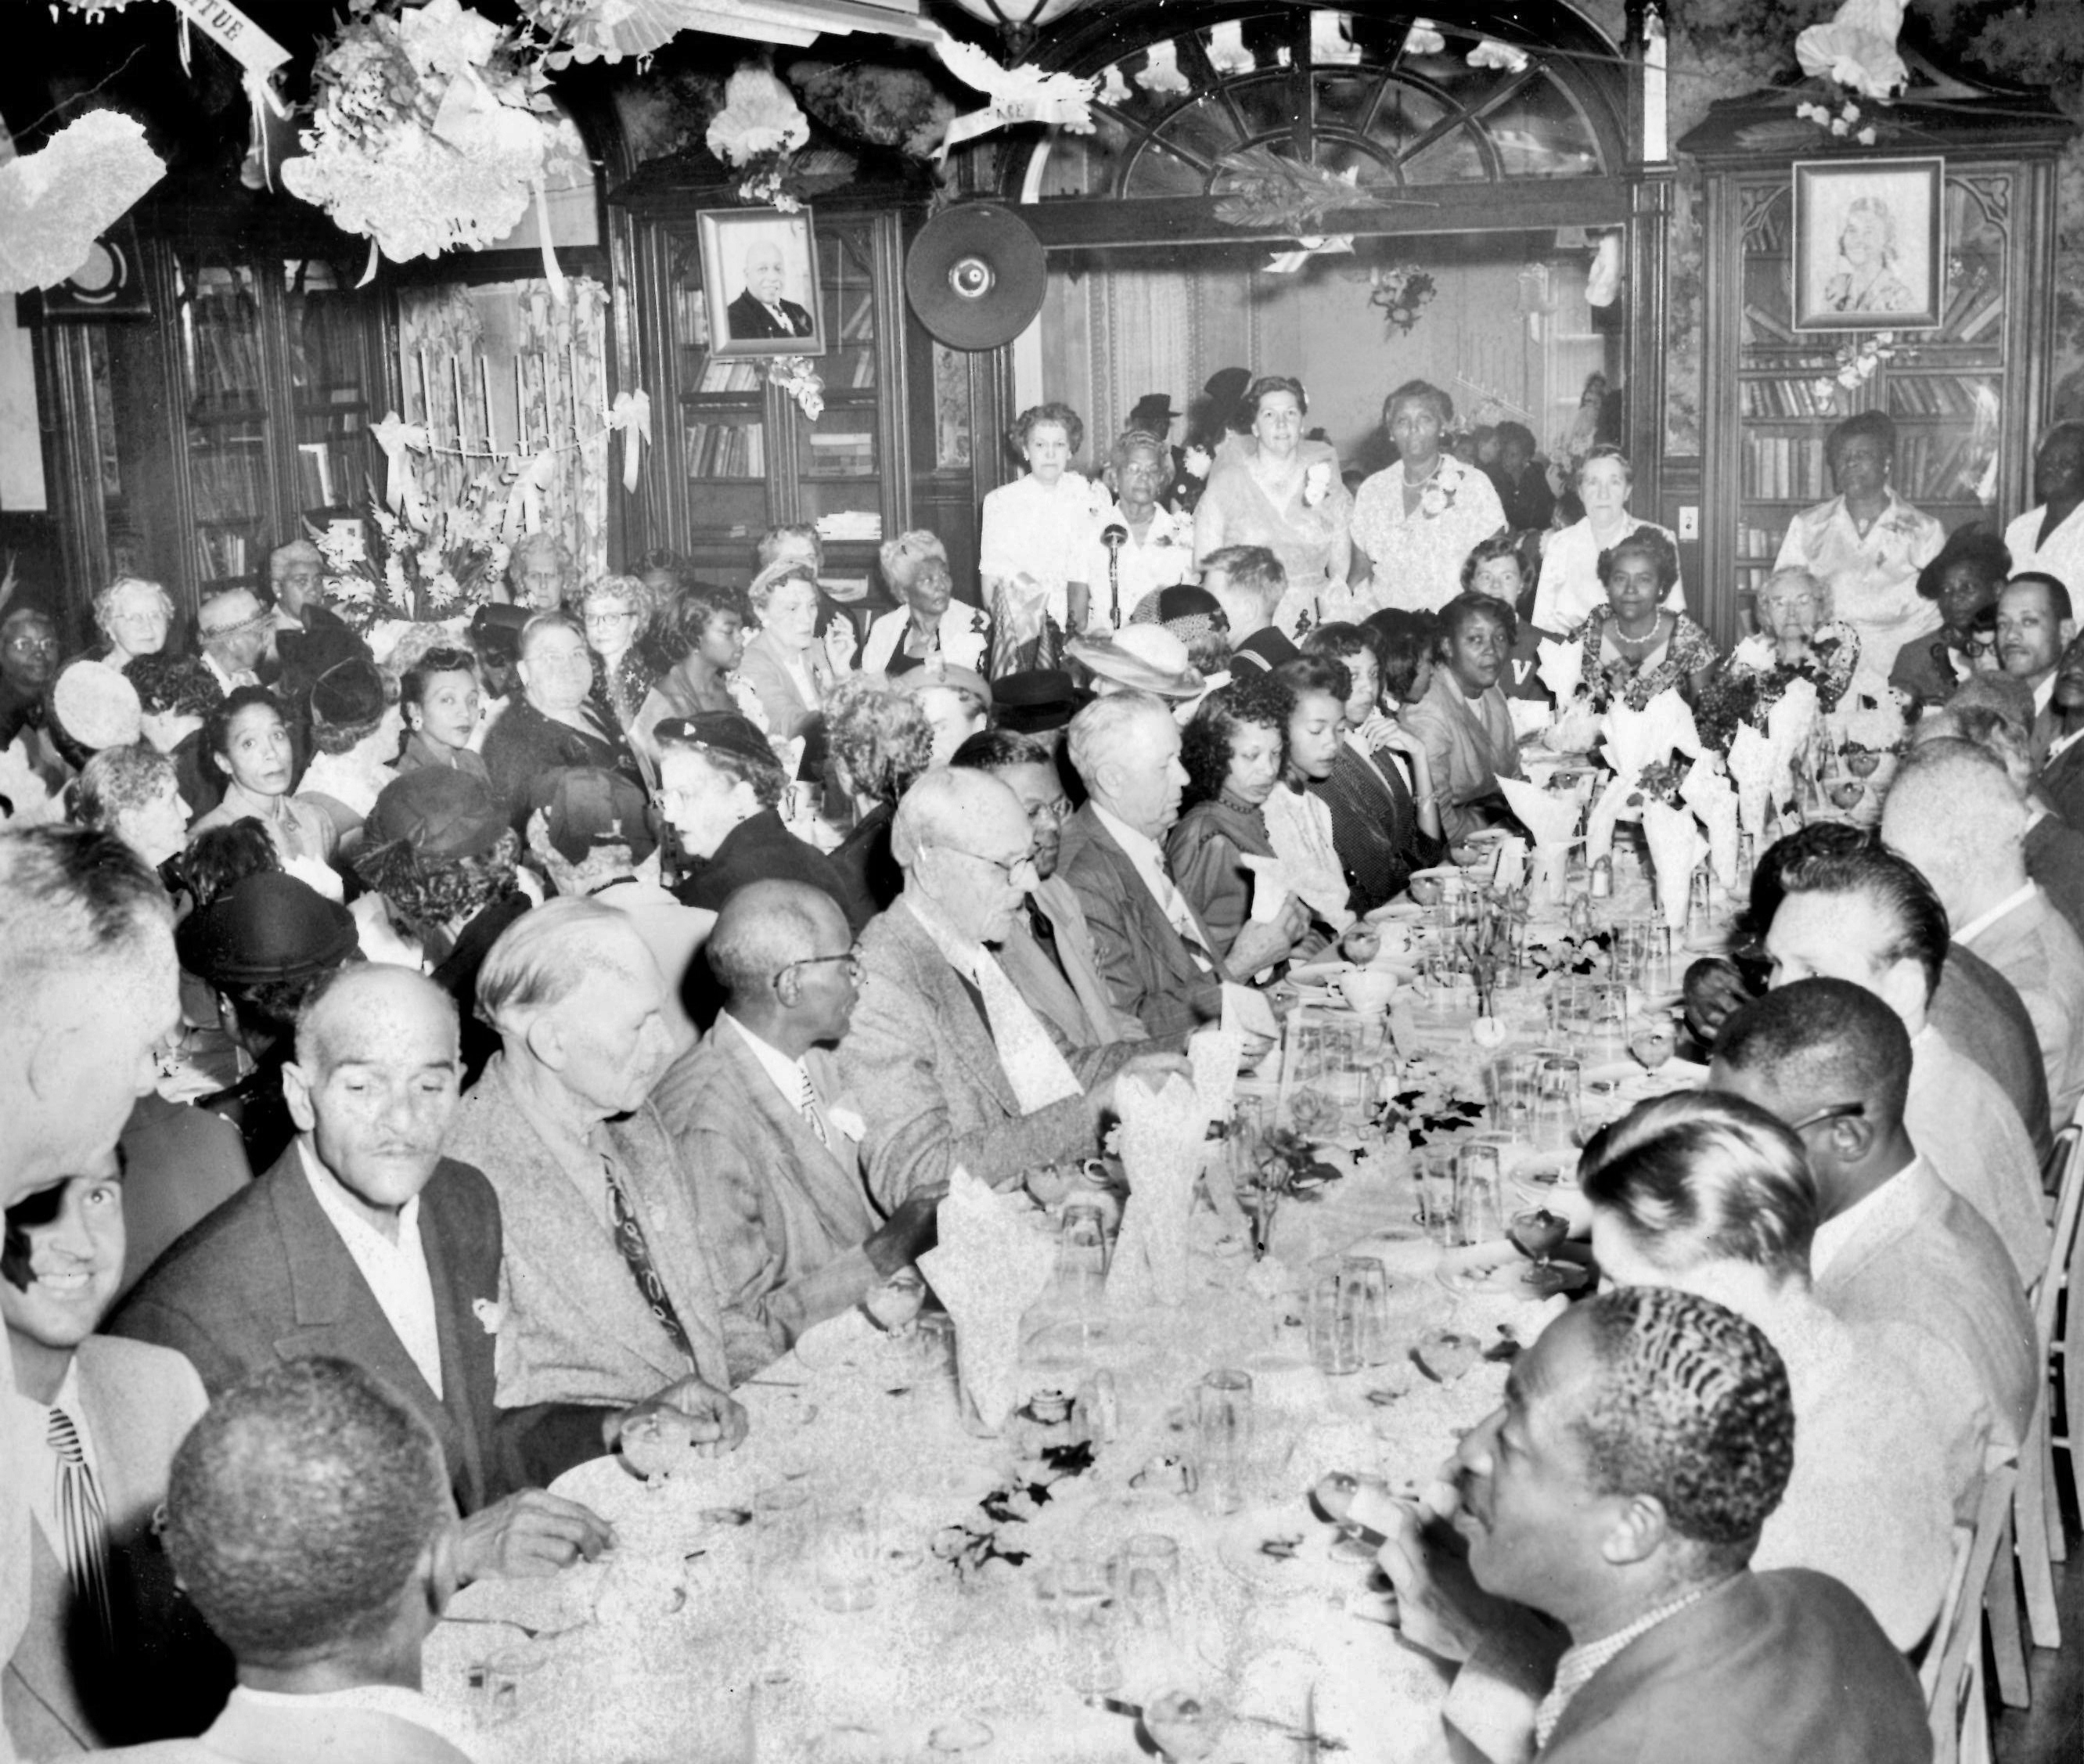 An image of one of Father Divine's banquets.